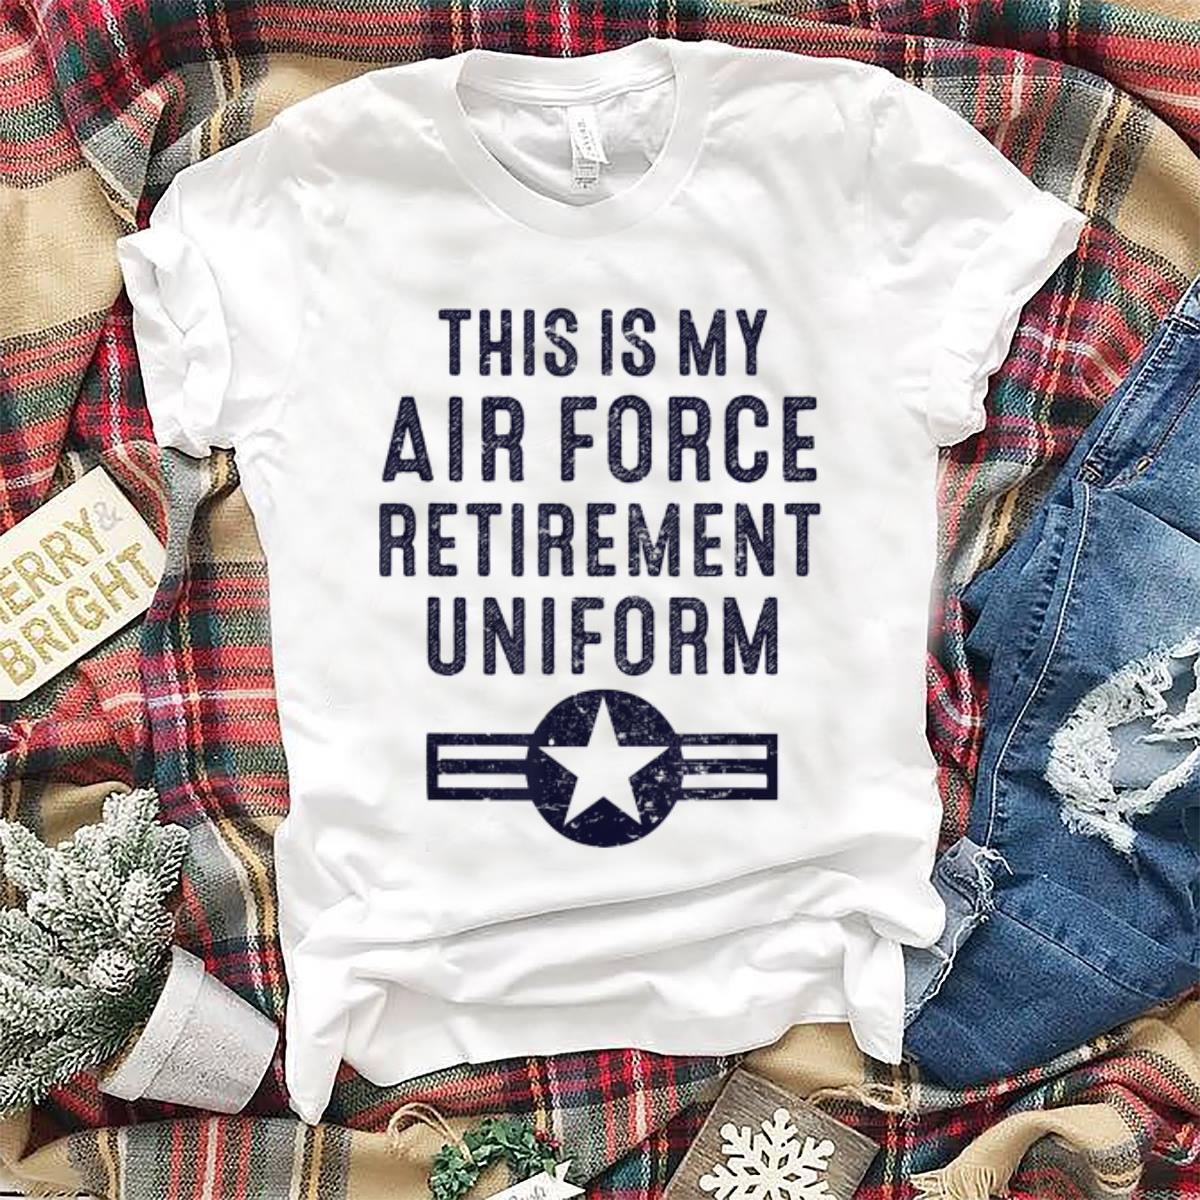 This Is My Air Force Retirement Uniform hoodie 1 - This Is My Air Force Retirement Uniform hoodie